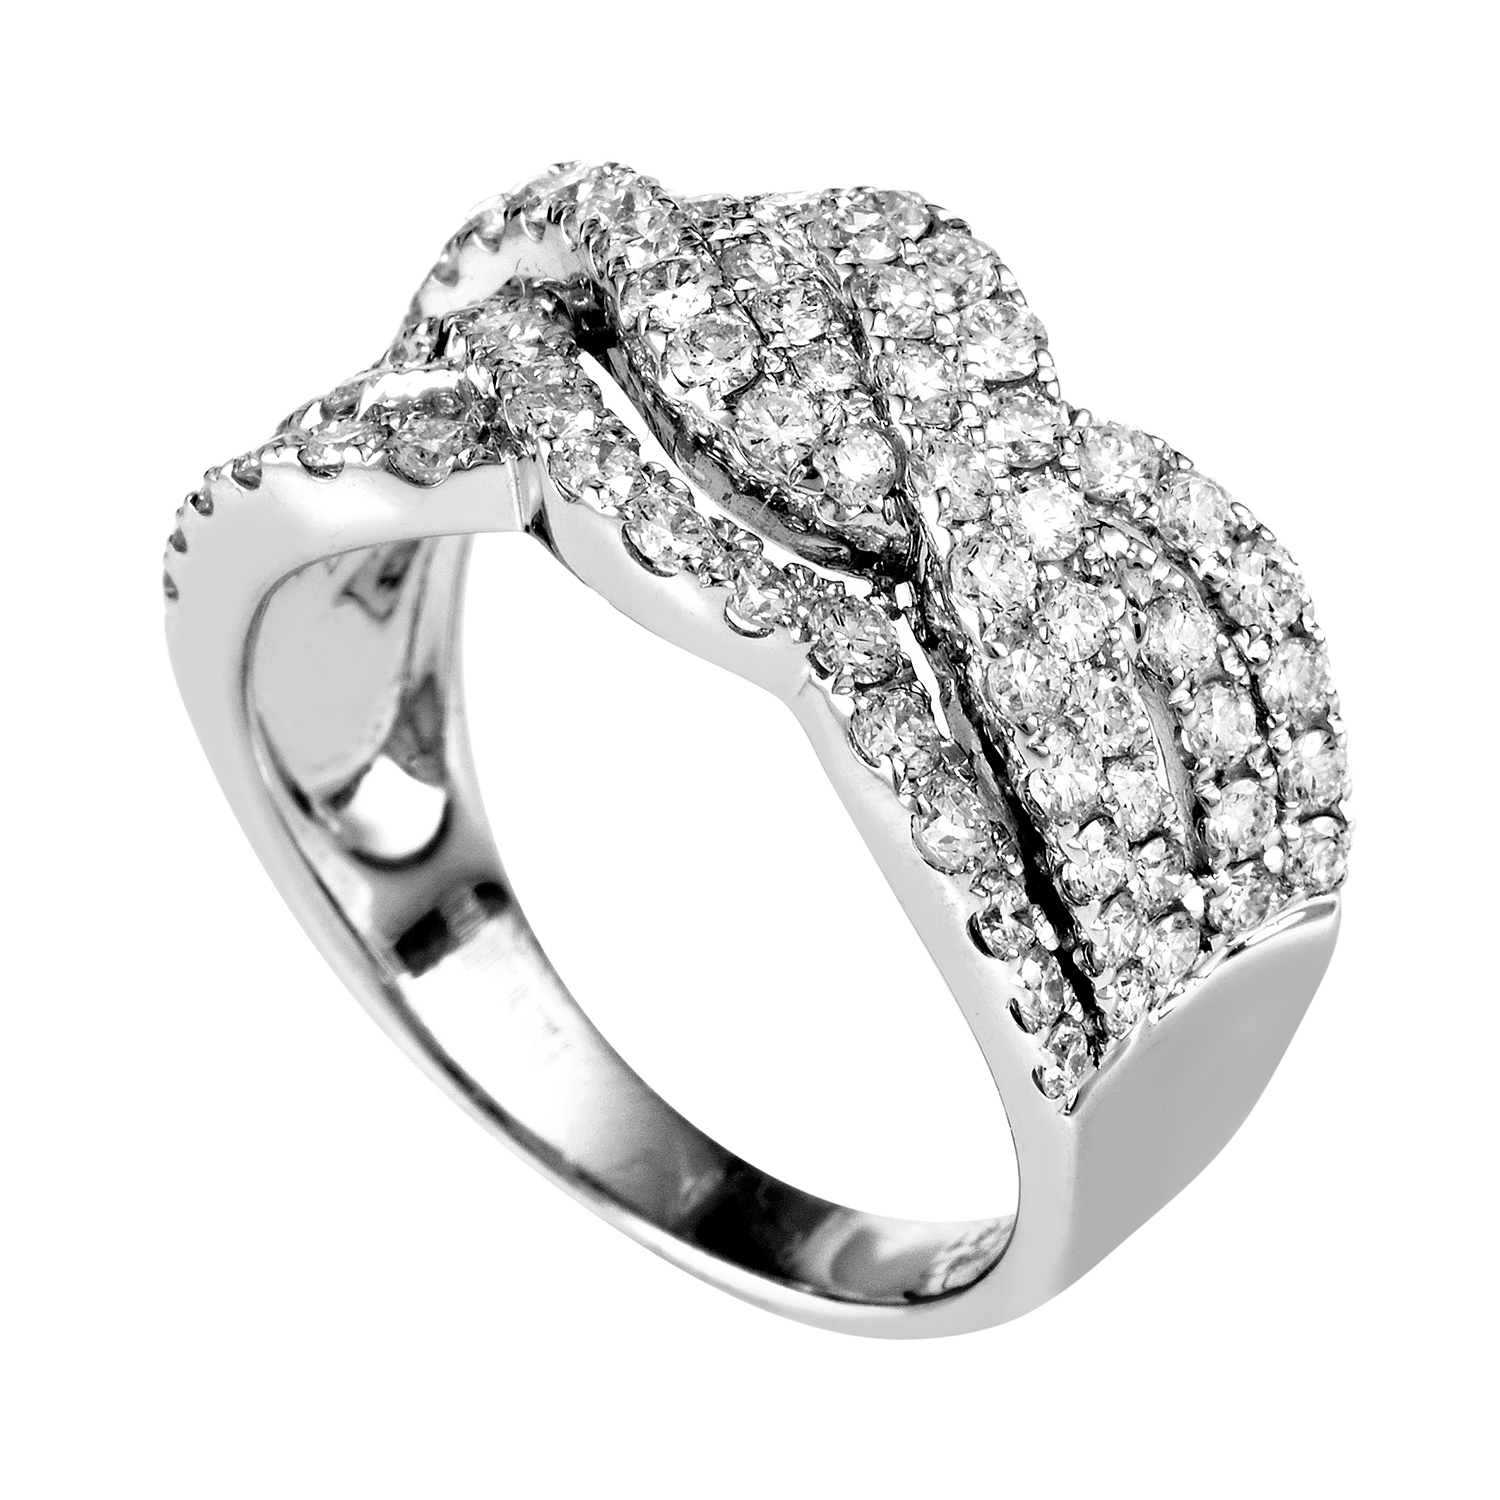 Women's 18K White Gold Diamond Pave Braided Band Ring 21907332